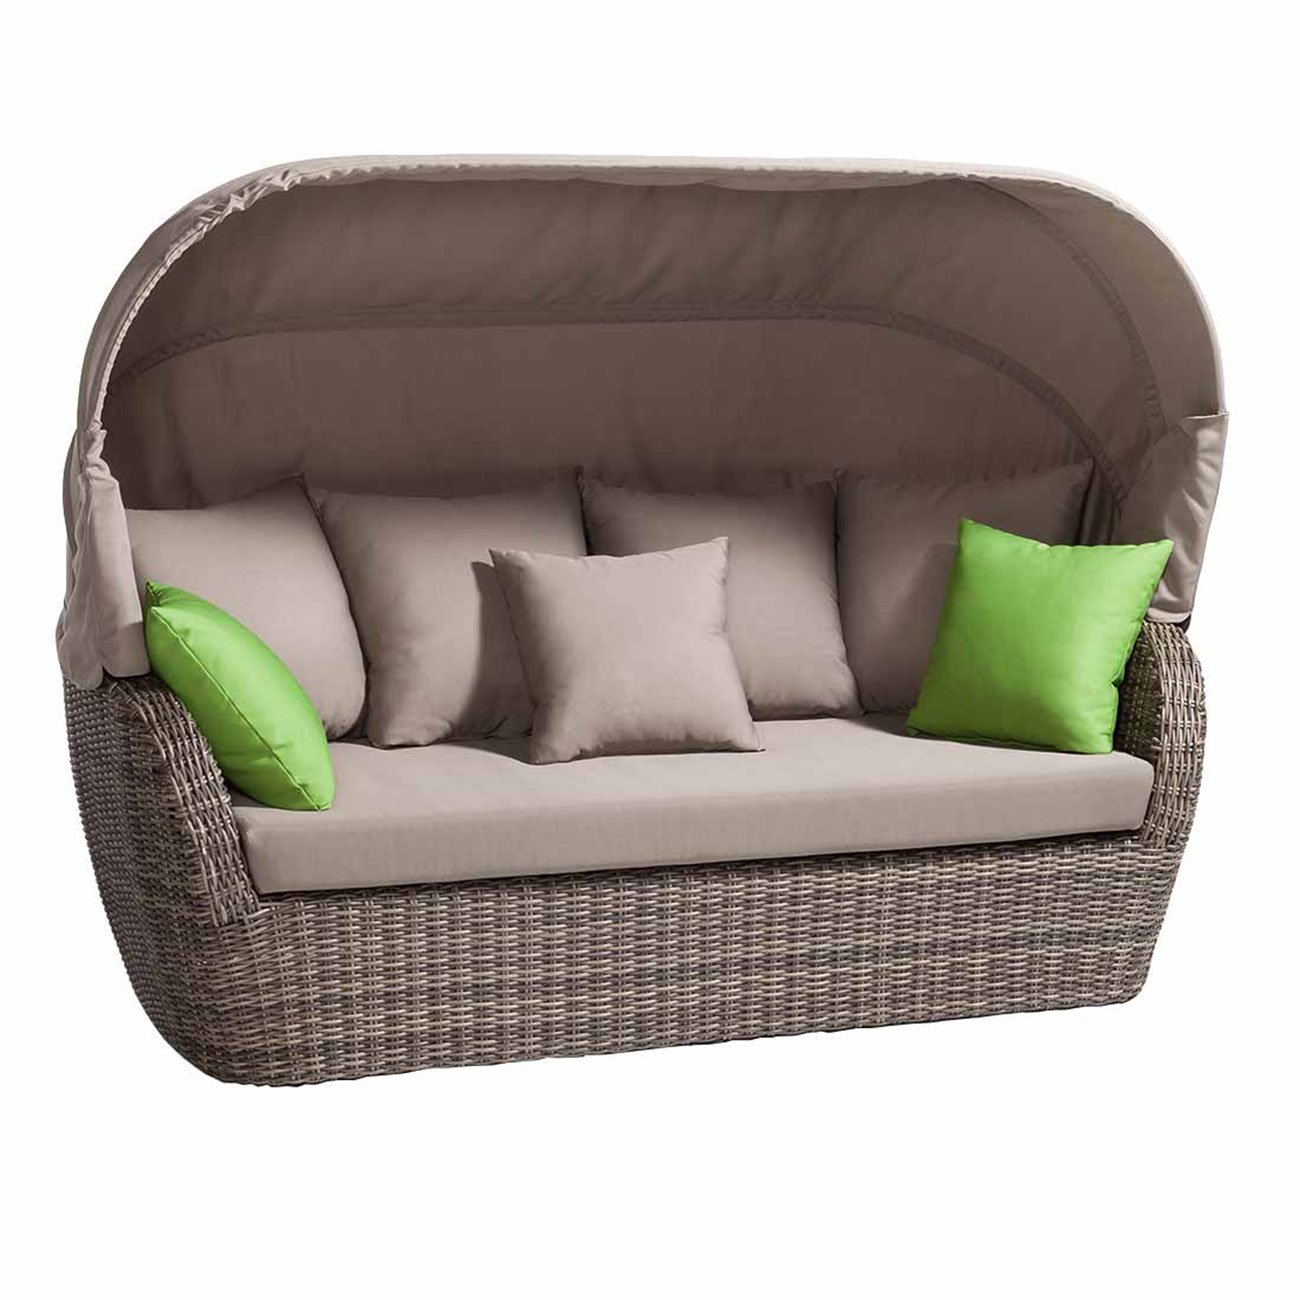 gartensofa polyrattan outliv roma loungesofa mit dach geflecht dark wood taupe gartencouch. Black Bedroom Furniture Sets. Home Design Ideas